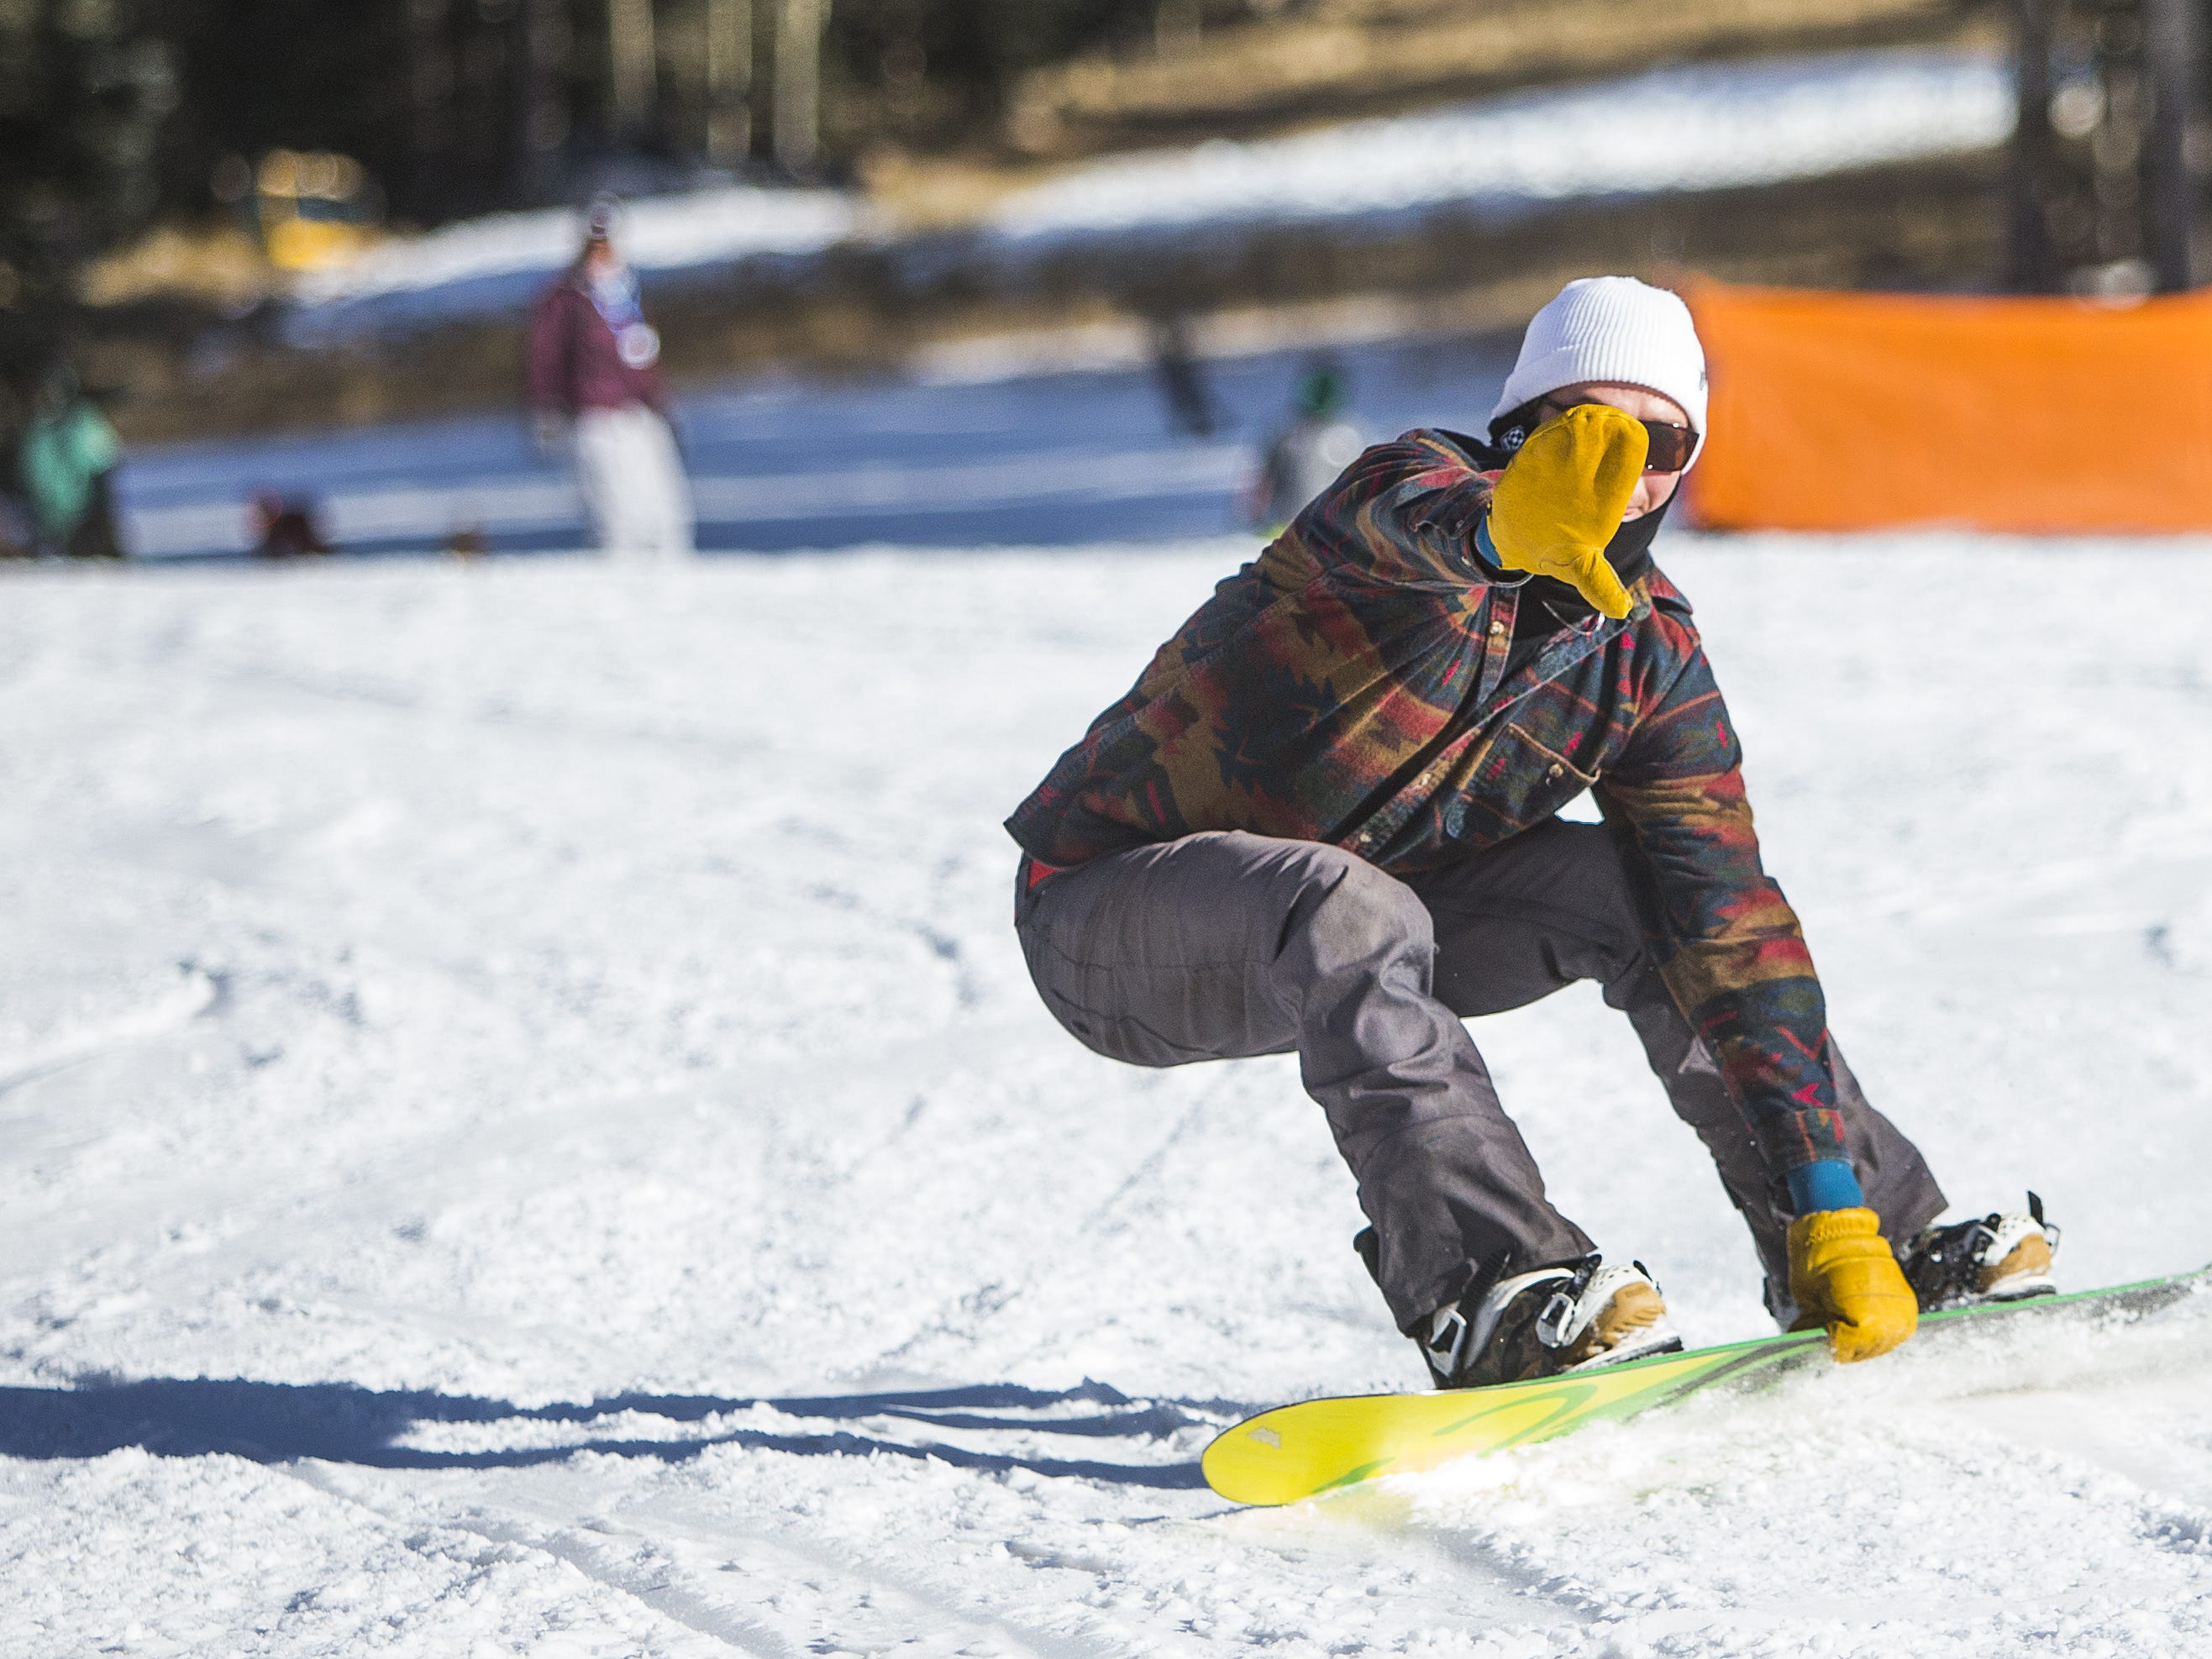 A snowboarder finishes his run at Arizona Snowbowl in Flagstaff, Wednesday, November 28, 2018.